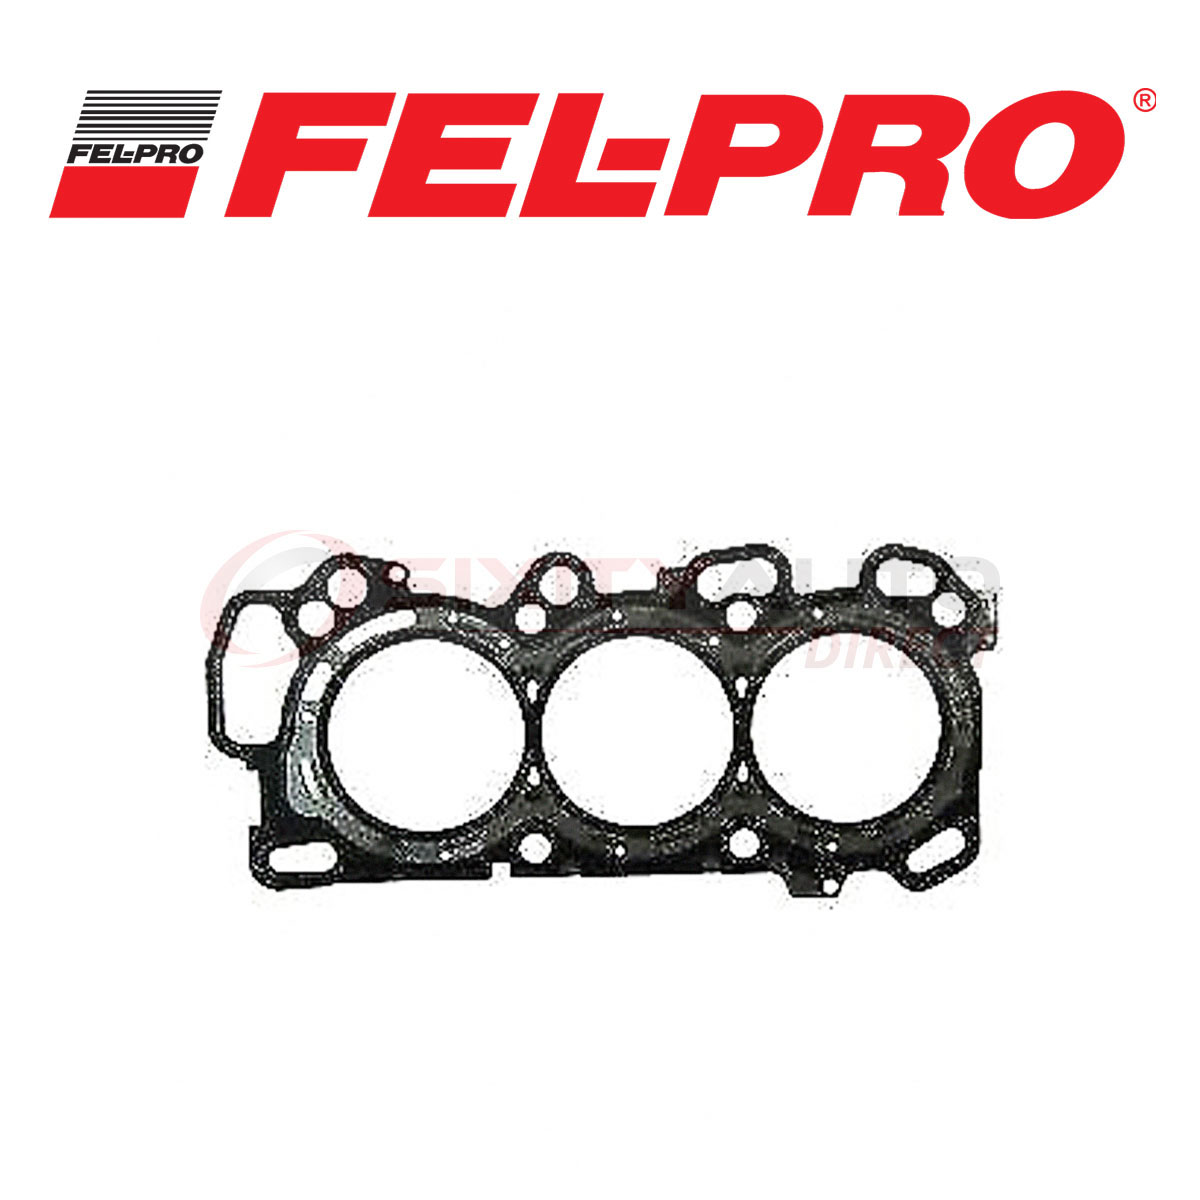 Fel Pro Cylinder Head Gasket For 2010-2013 Acura TSX 3.5L